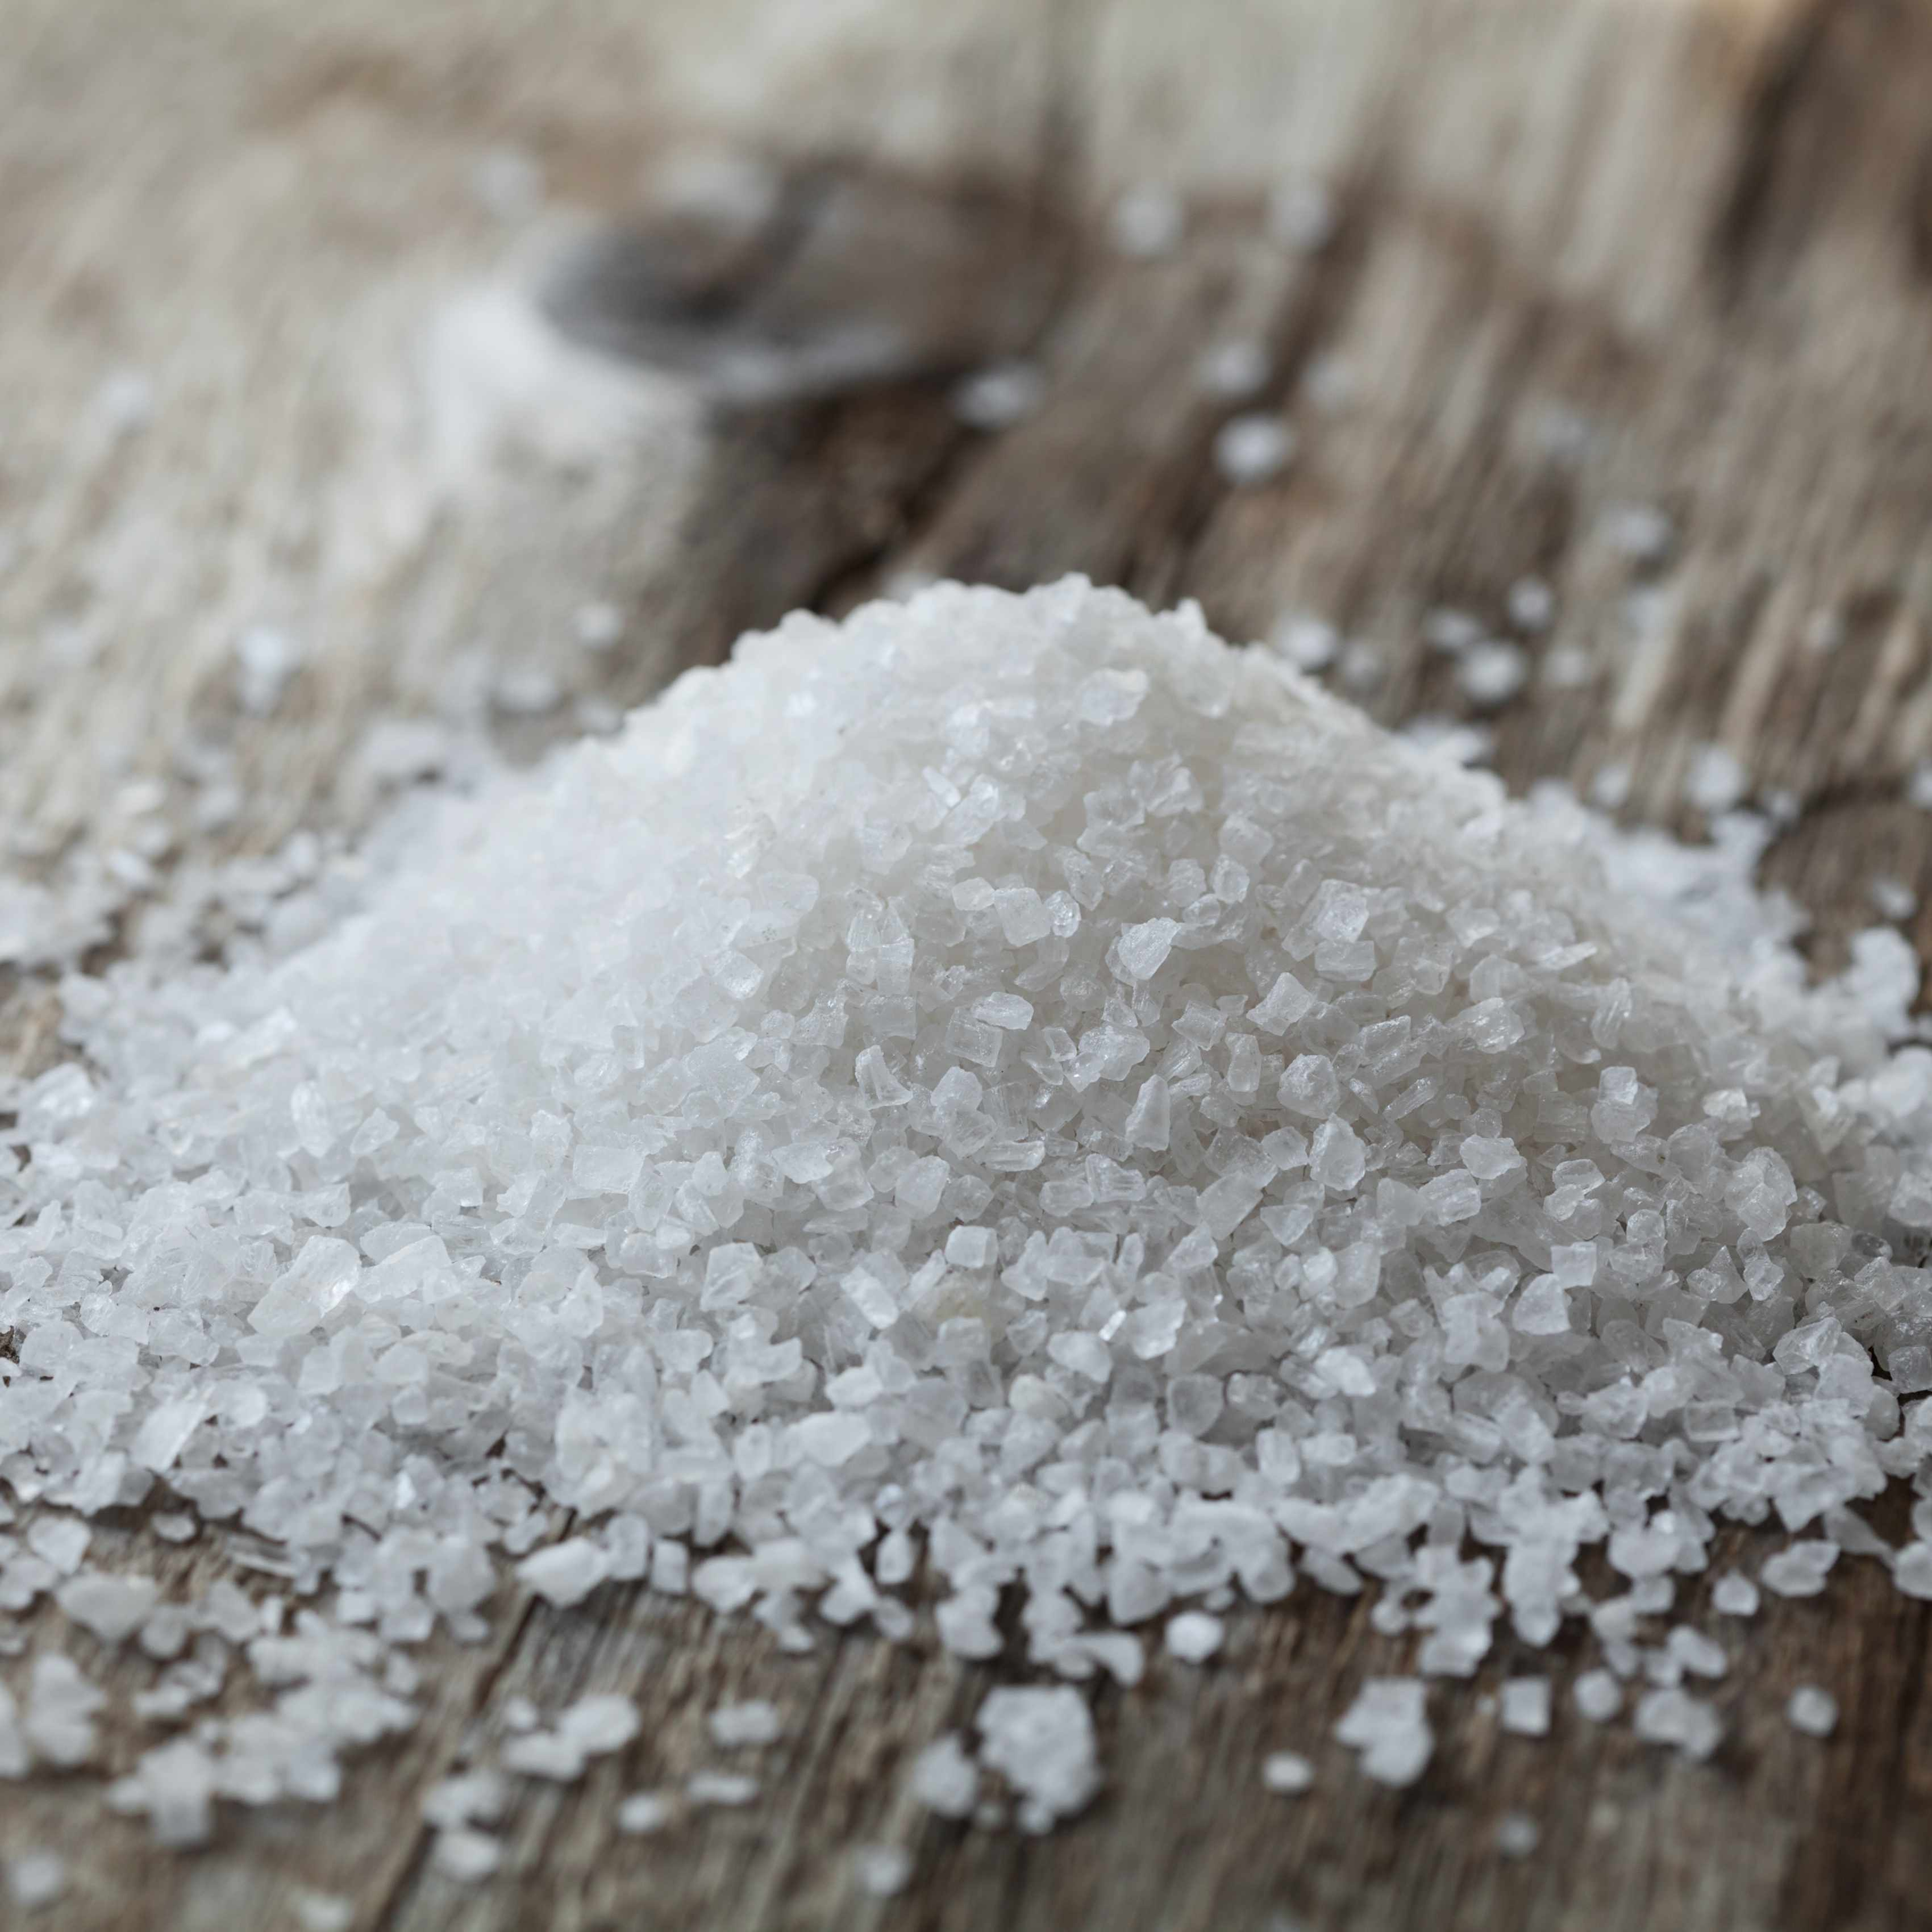 a pile of sea salt on a weathered wooden surface